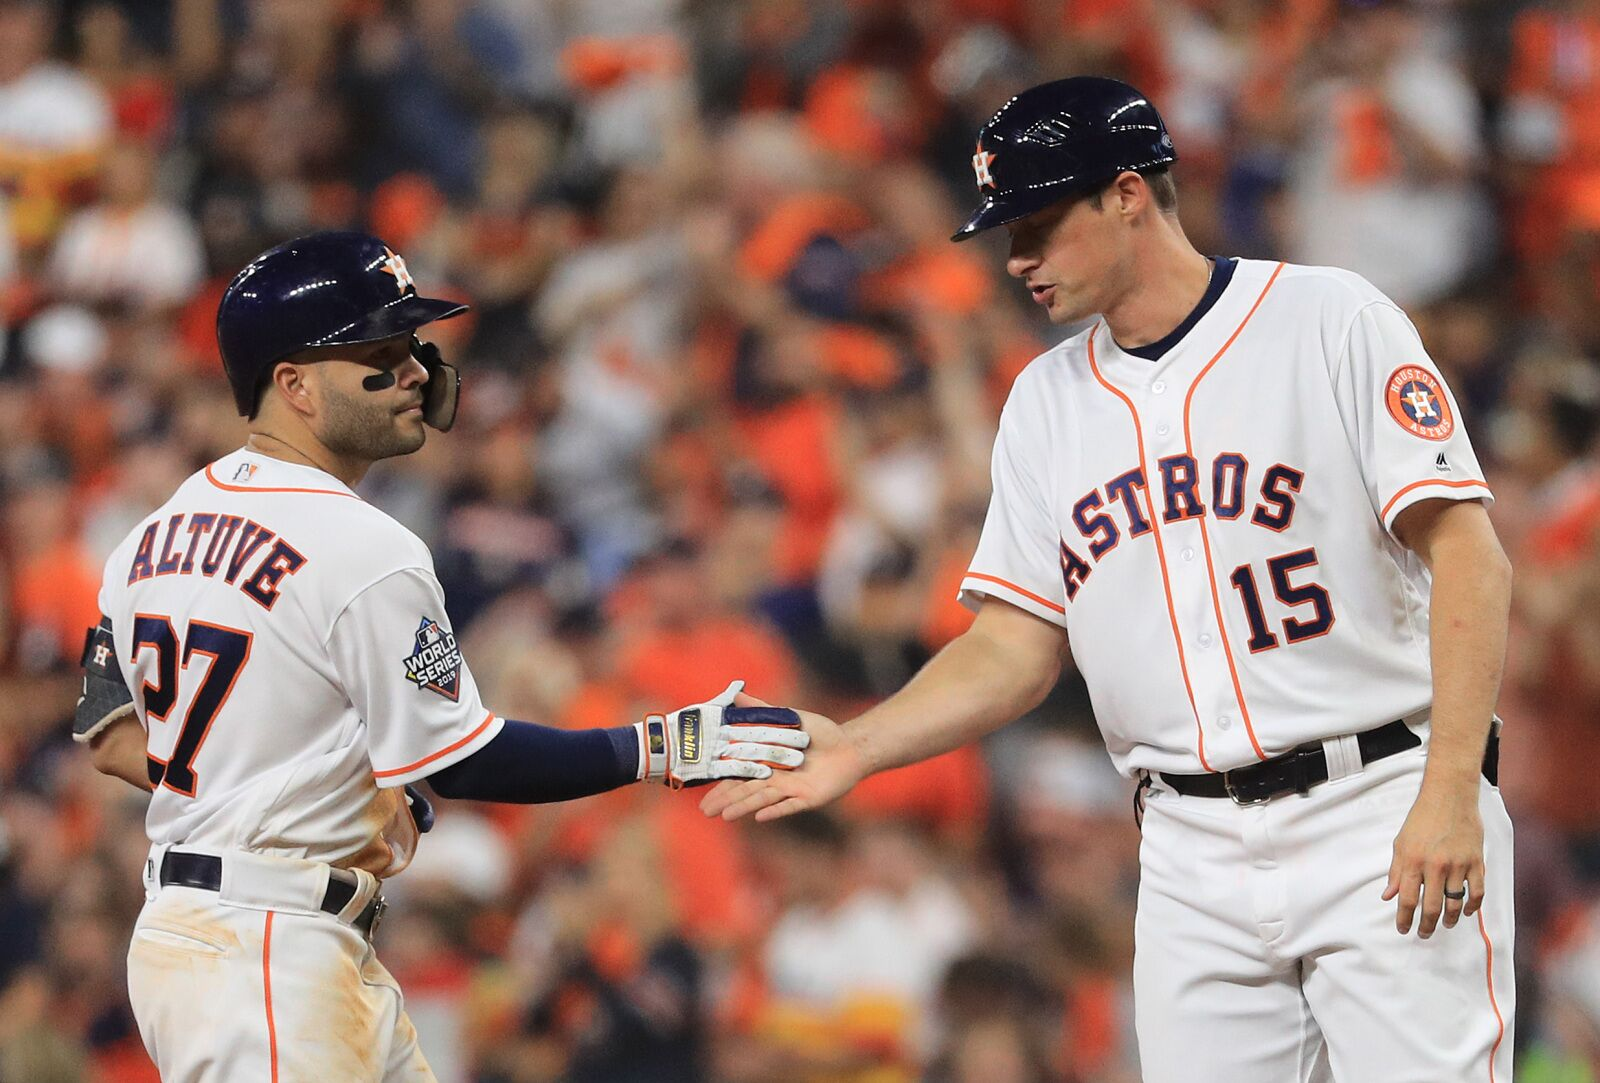 Astros: First base coach Don Kelly hired as Pirates bench coach